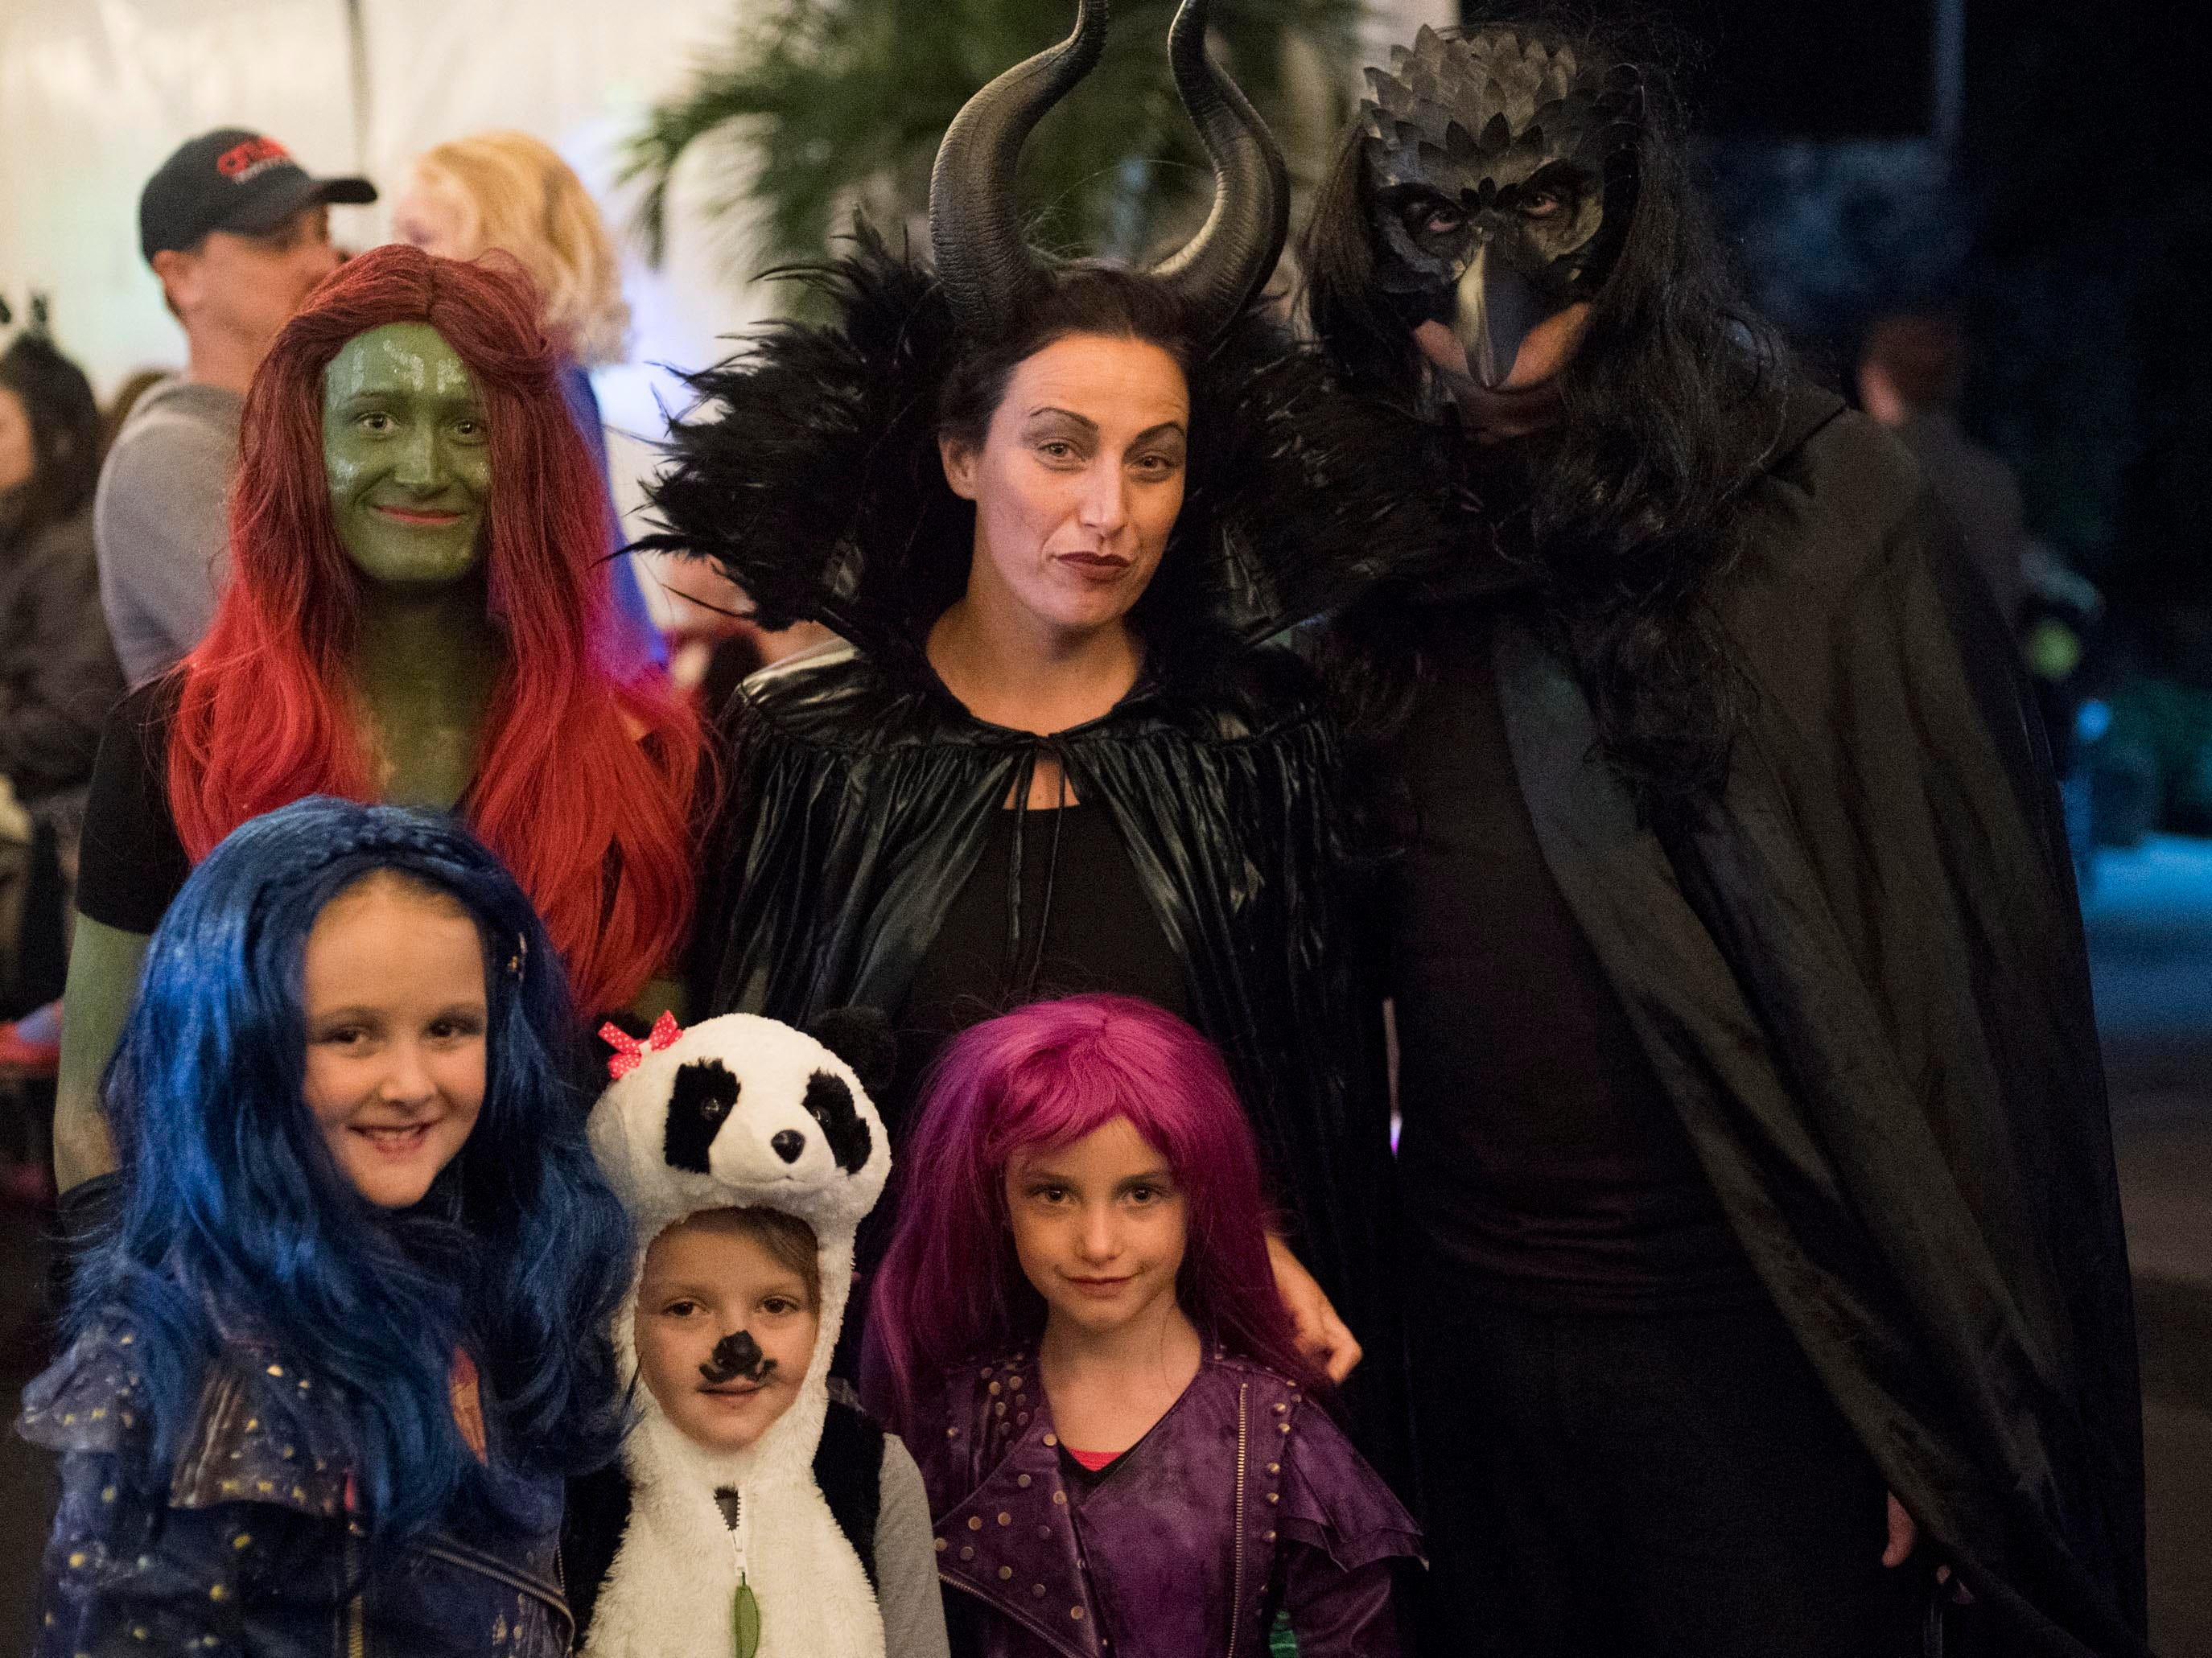 Trick-or-treaters attend the Monster Mash dance party at Zoo Knoxville's Boo! at the Zoo on Saturday, October 20, 2018.